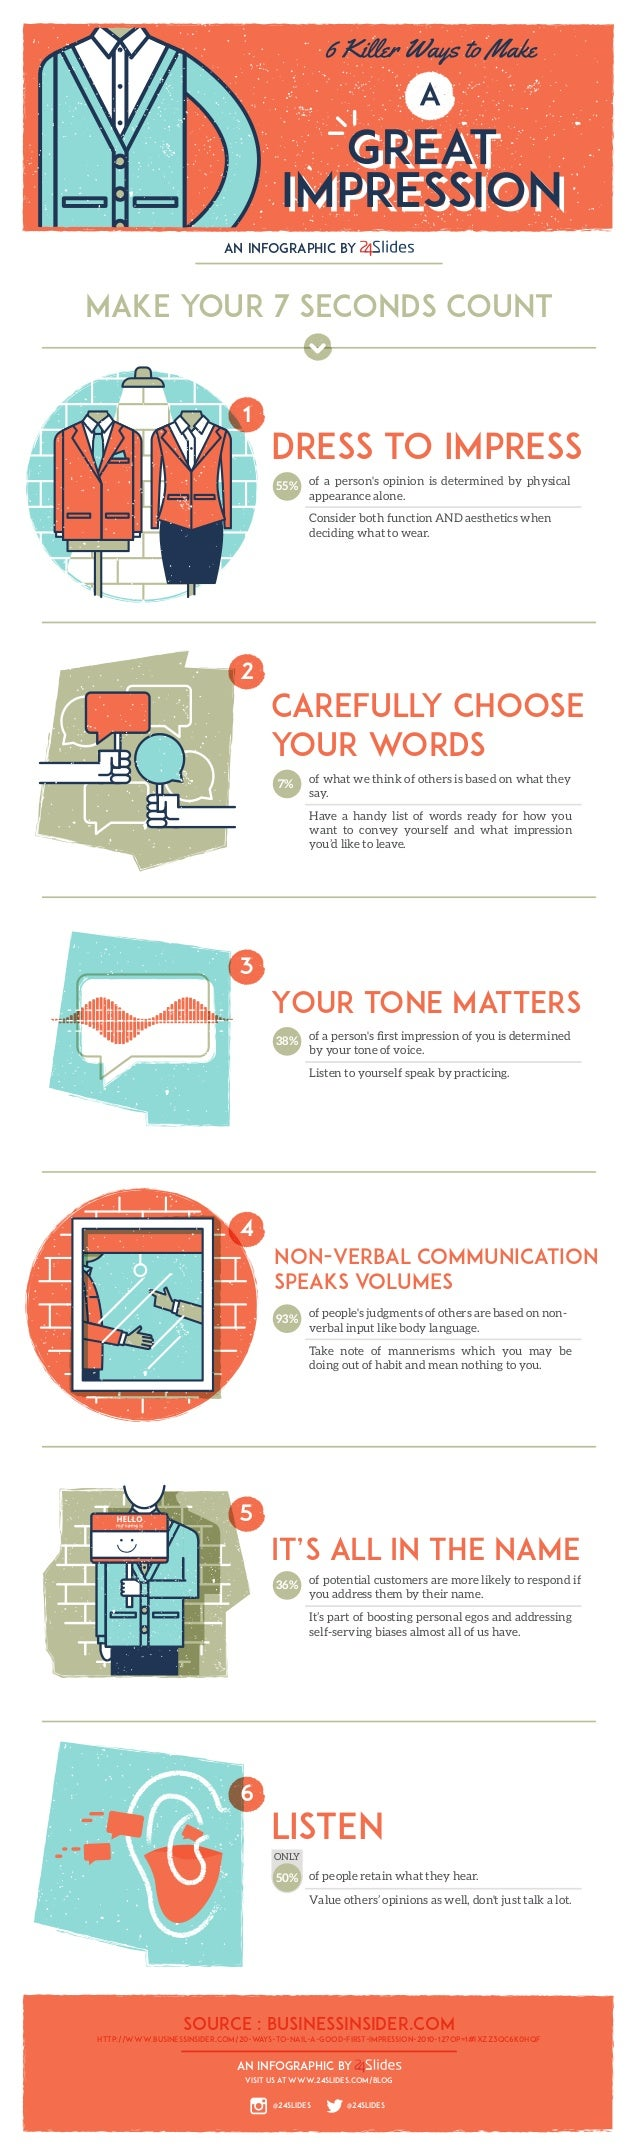 an infographic by Make your 7 seconds count Dress to impress of a person's opinion is determined by physical appearance al...